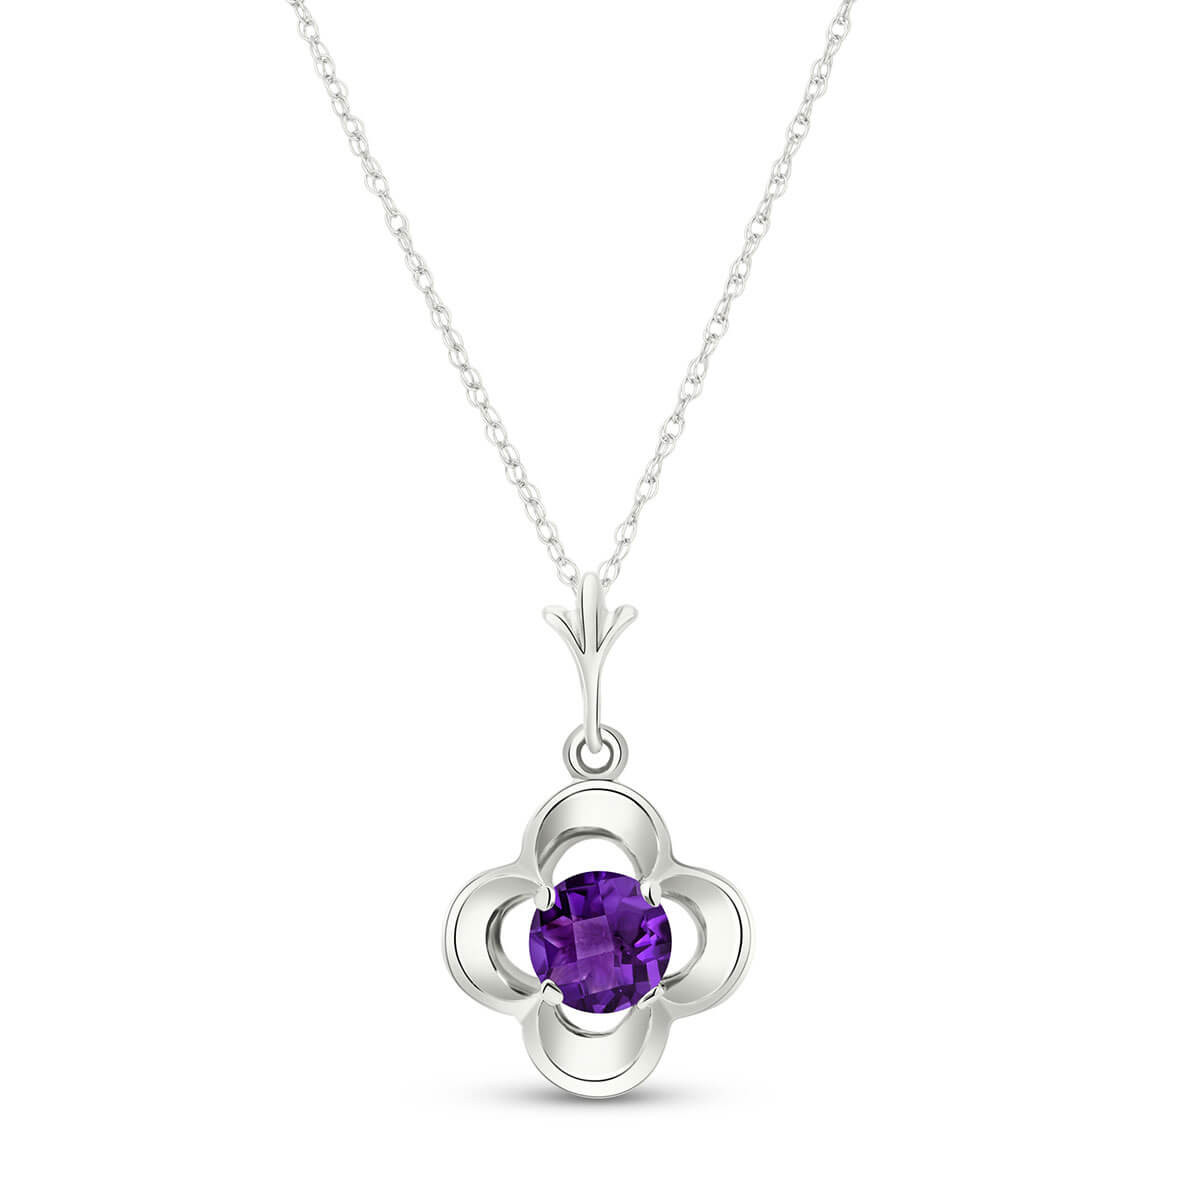 Amethyst Corona Pendant Necklace 0.55 ct in 9ct White Gold